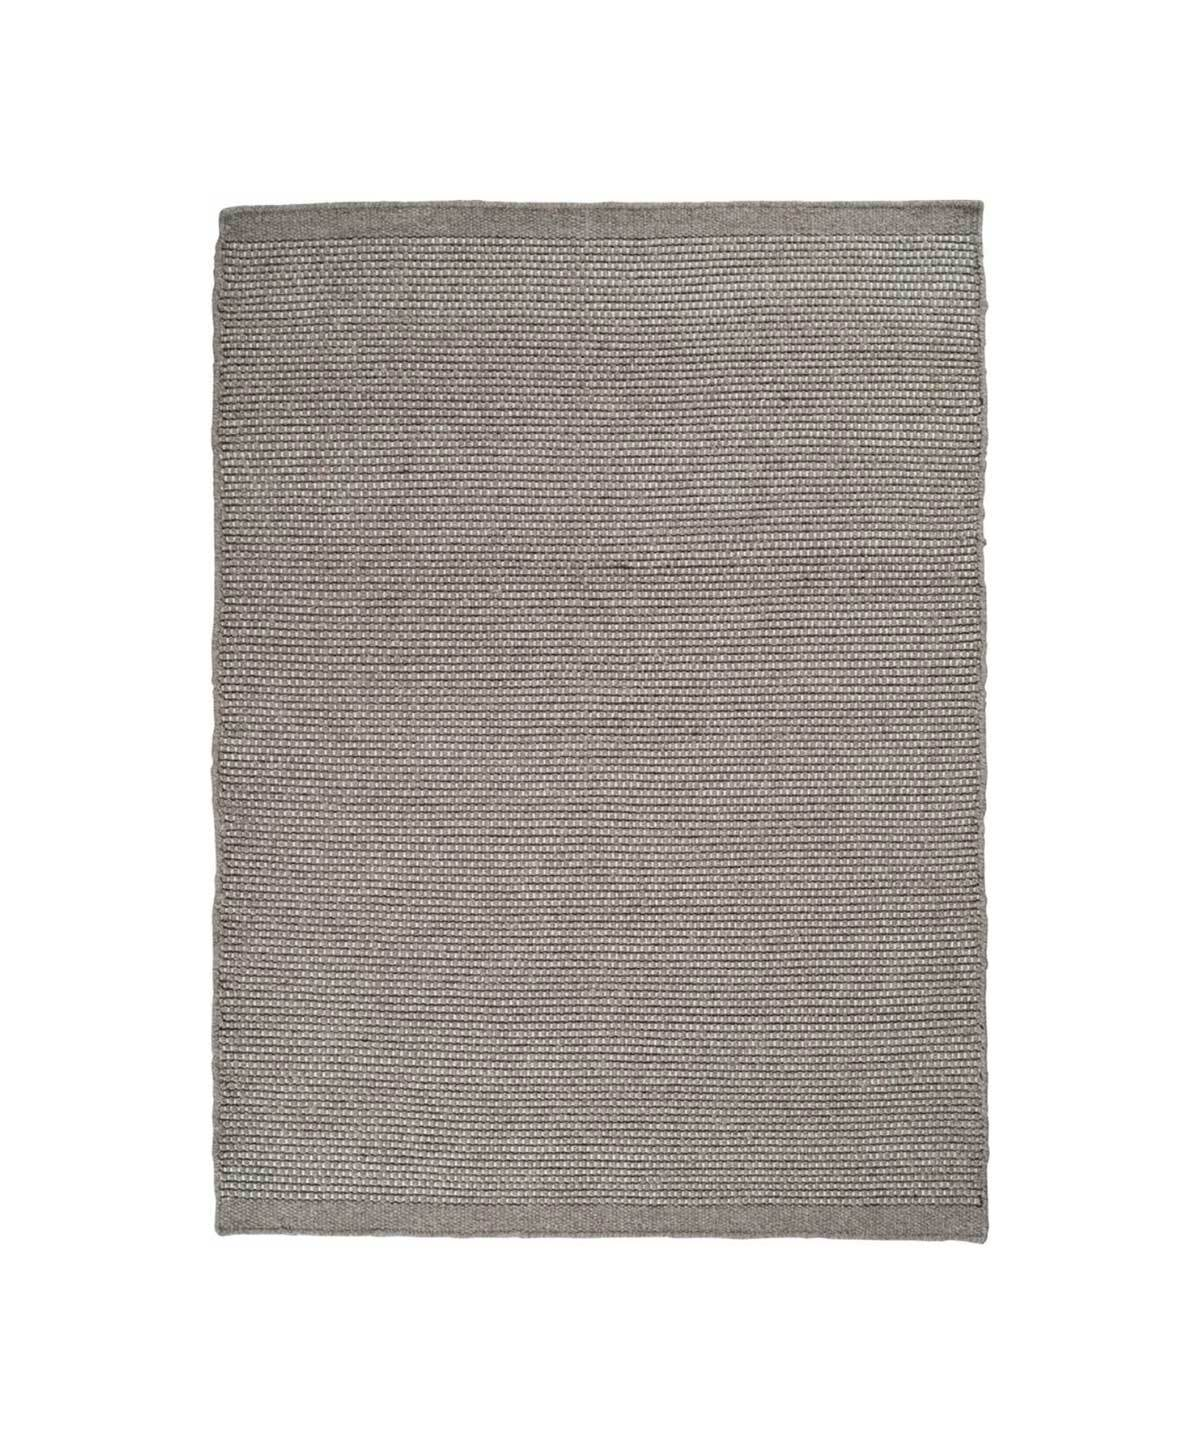 Asko Rug in Grey by Loloi | TRNK